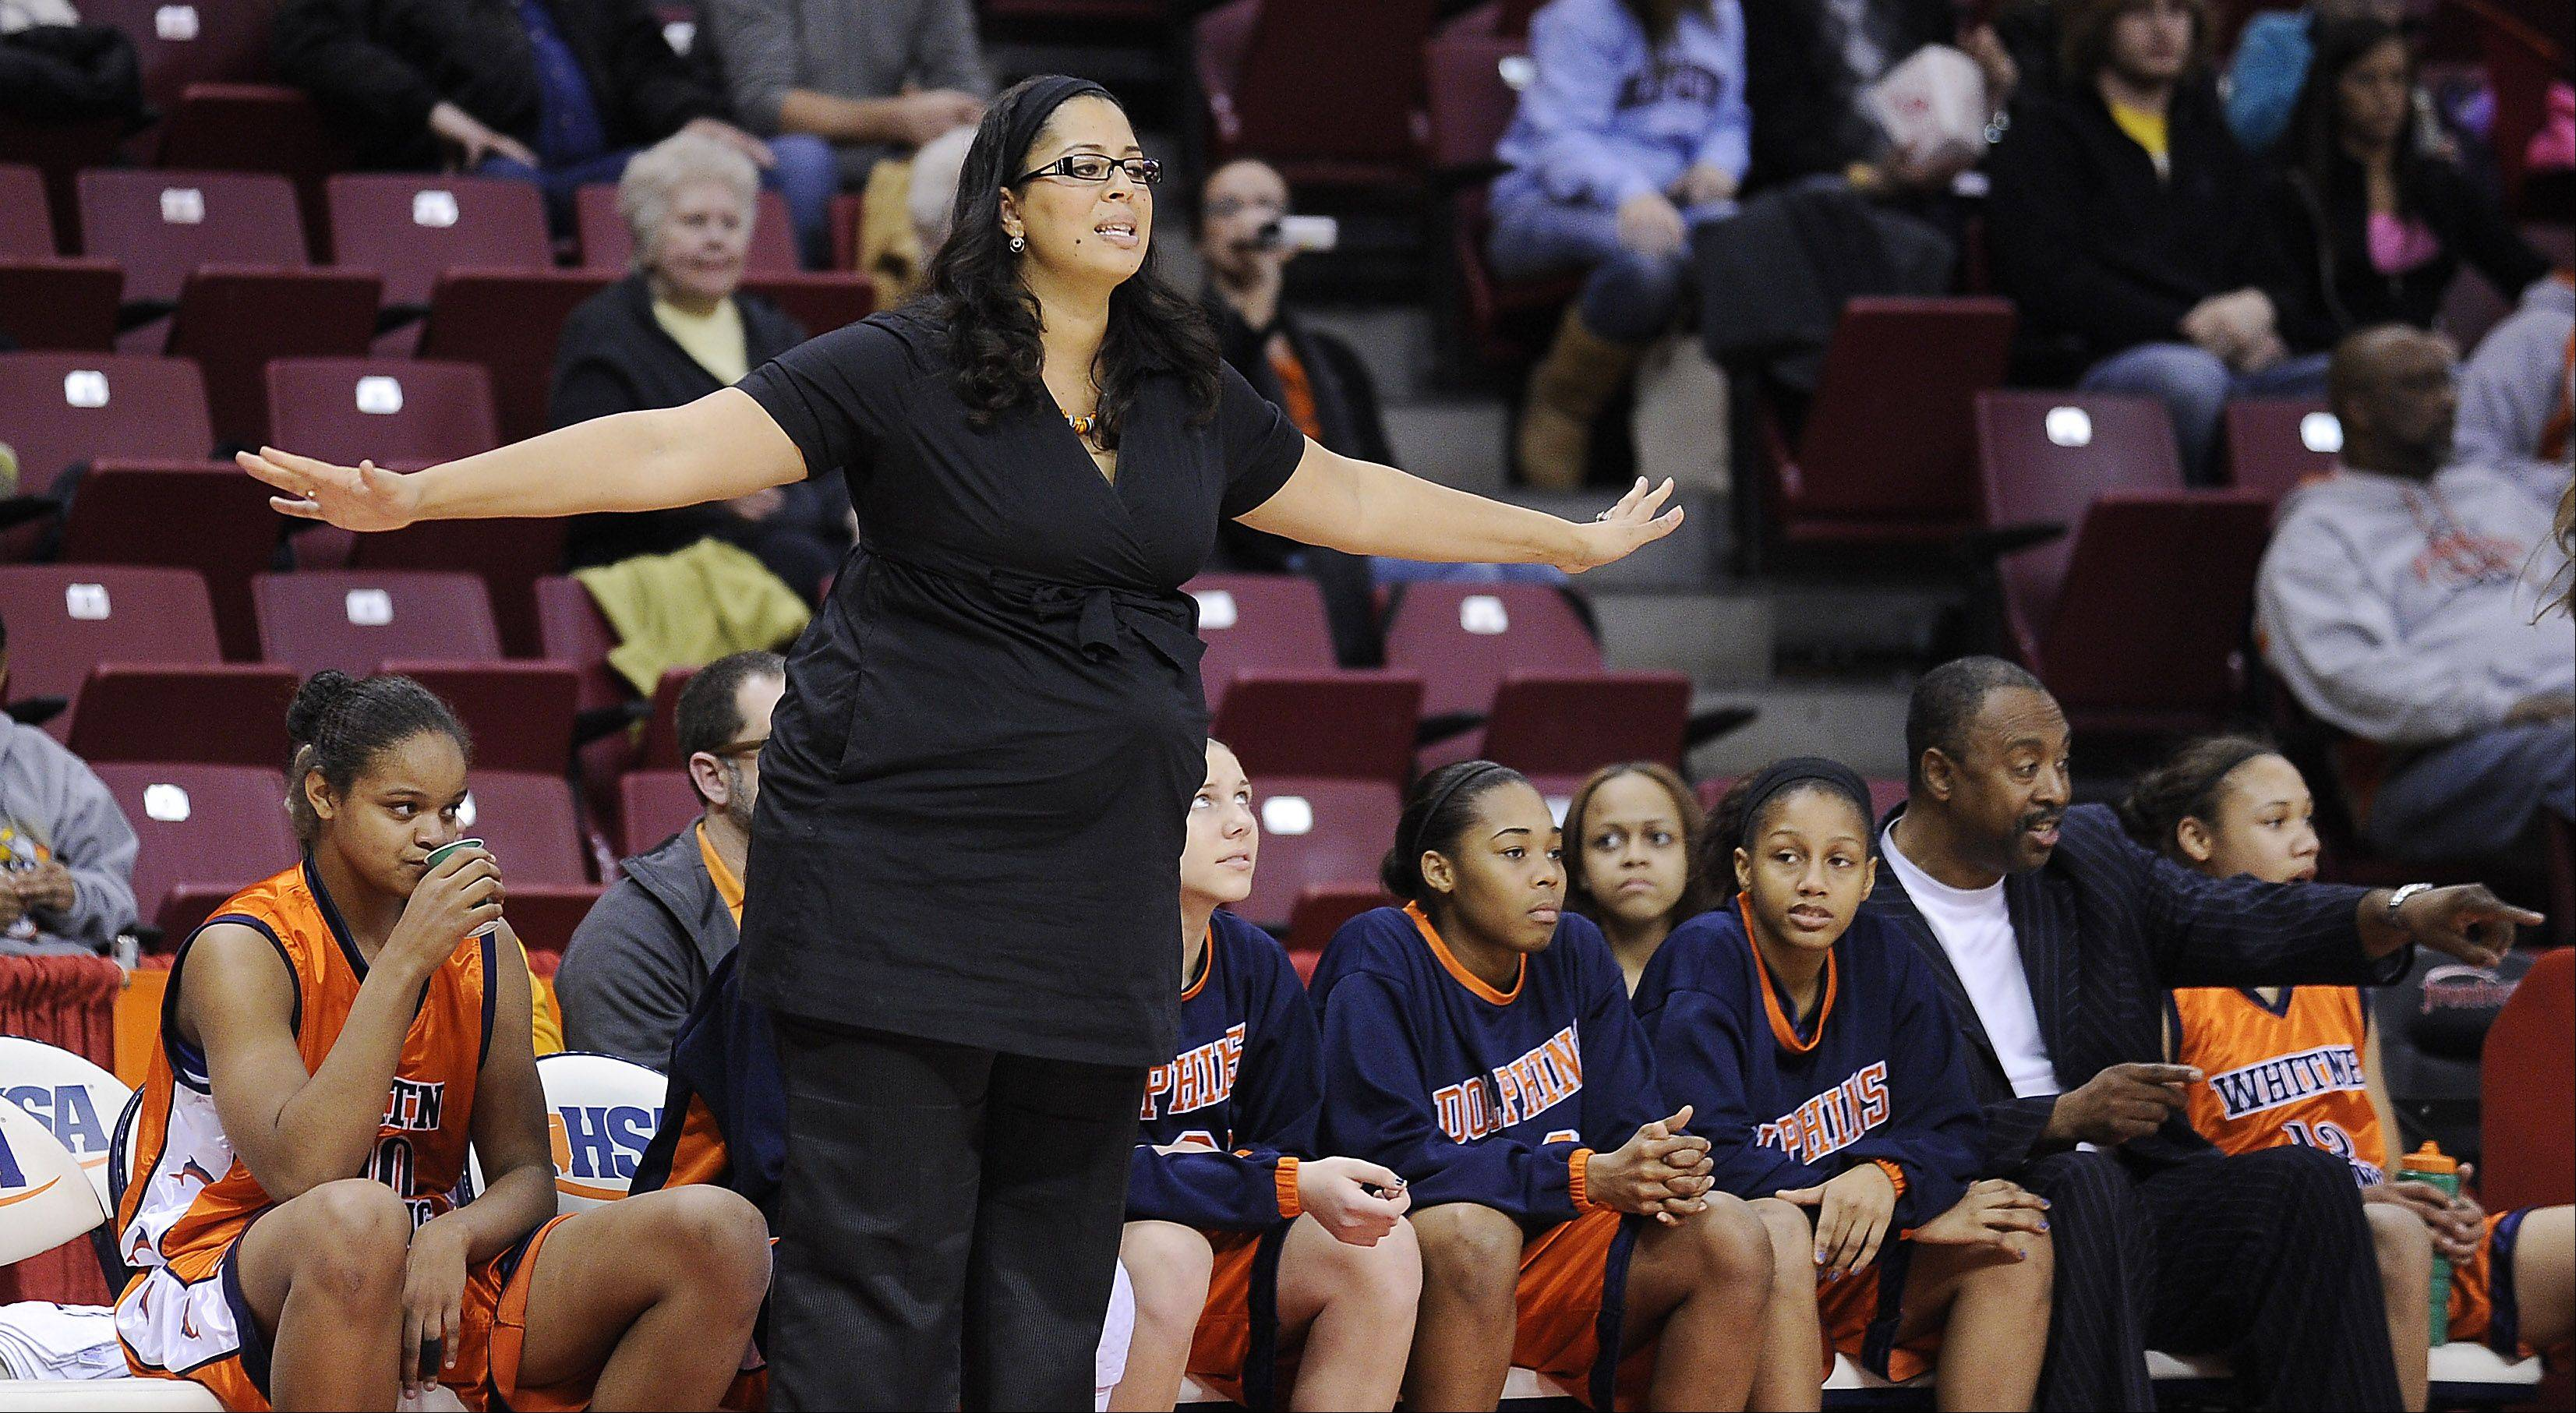 Whitney Young girls basketball coach and Larkin graduate Corry Irvin will bring her perennial state power to her alma mater Saturday to play Rolling Meadows, the No. 1 team in the Daily Herald Top 20, in the Mac Irvin Classic.